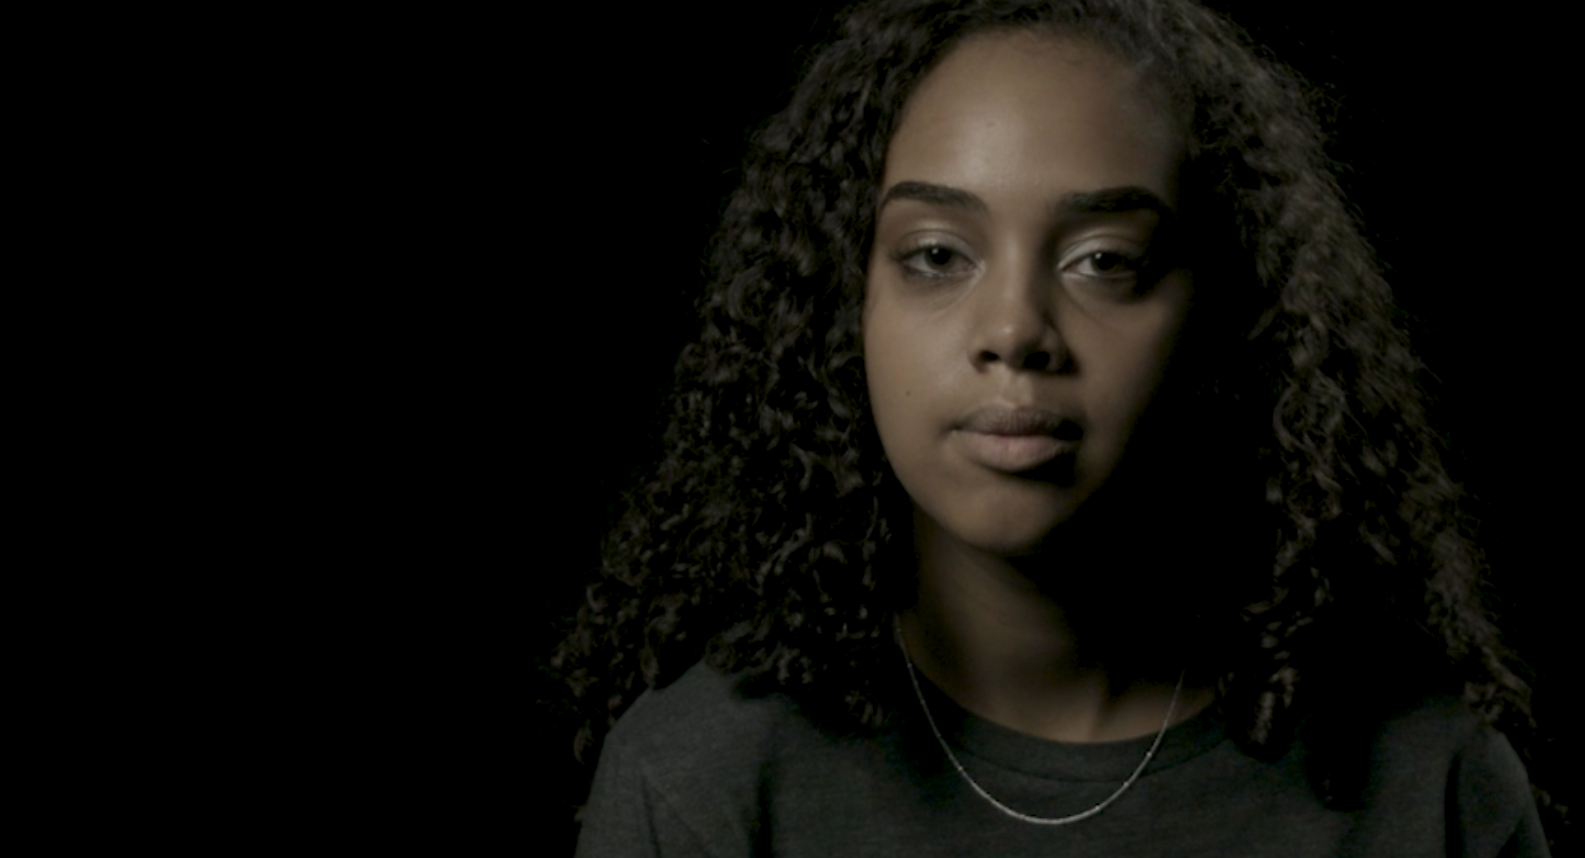 """Thumbnail preview image for """"She Could Be Me"""" video, featuring a 15-year-old African American girl smiling at the camera."""